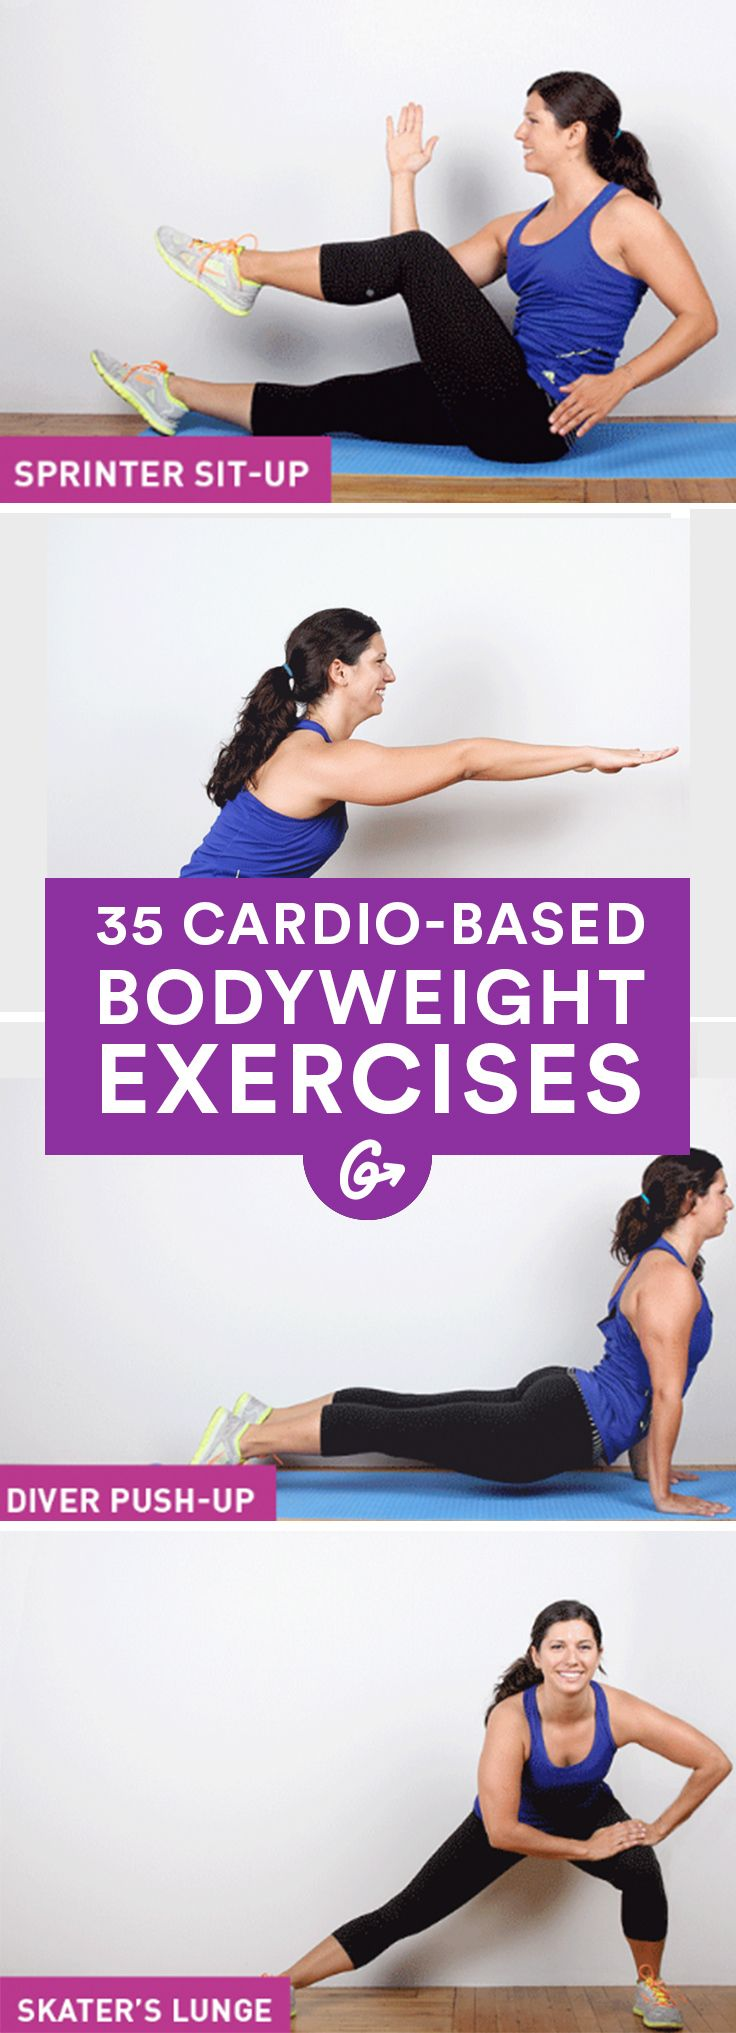 35 Cardio-Based Bodyweight Exercises #cardio #bodyweight #exercises http://greatist.com/fitness/cardio-bodyweight-exercises